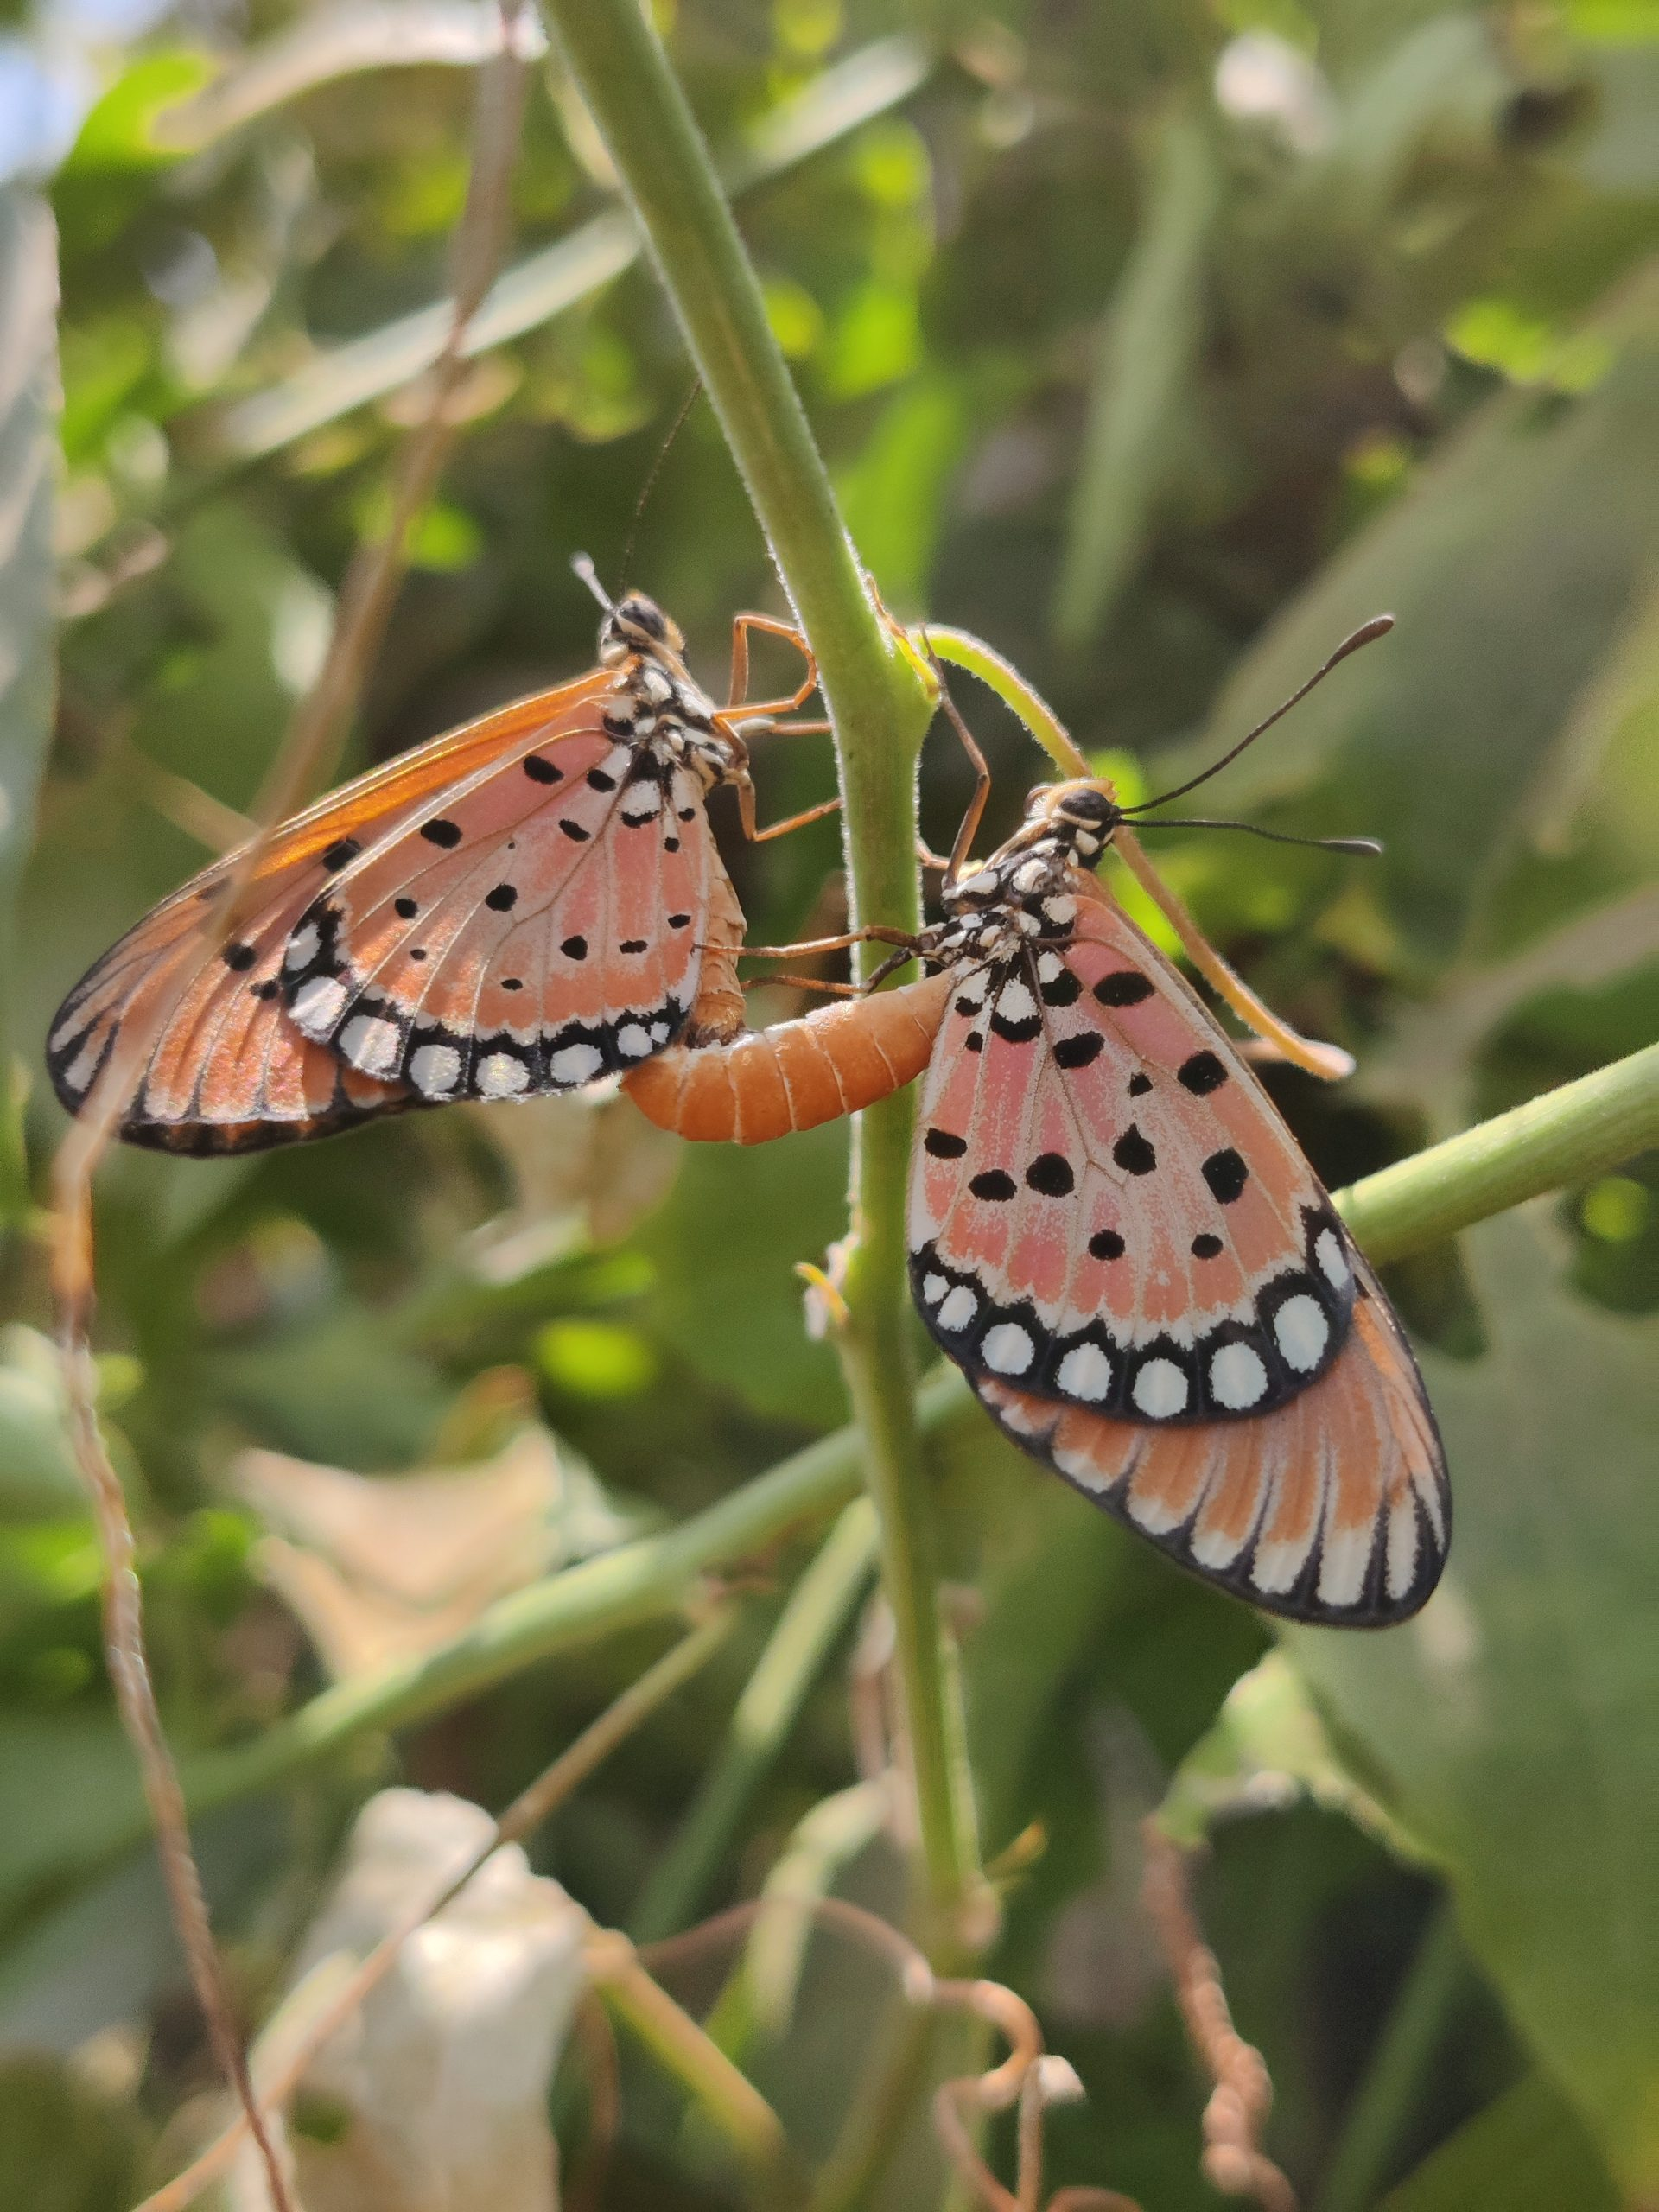 Two butterflies on a plant stem